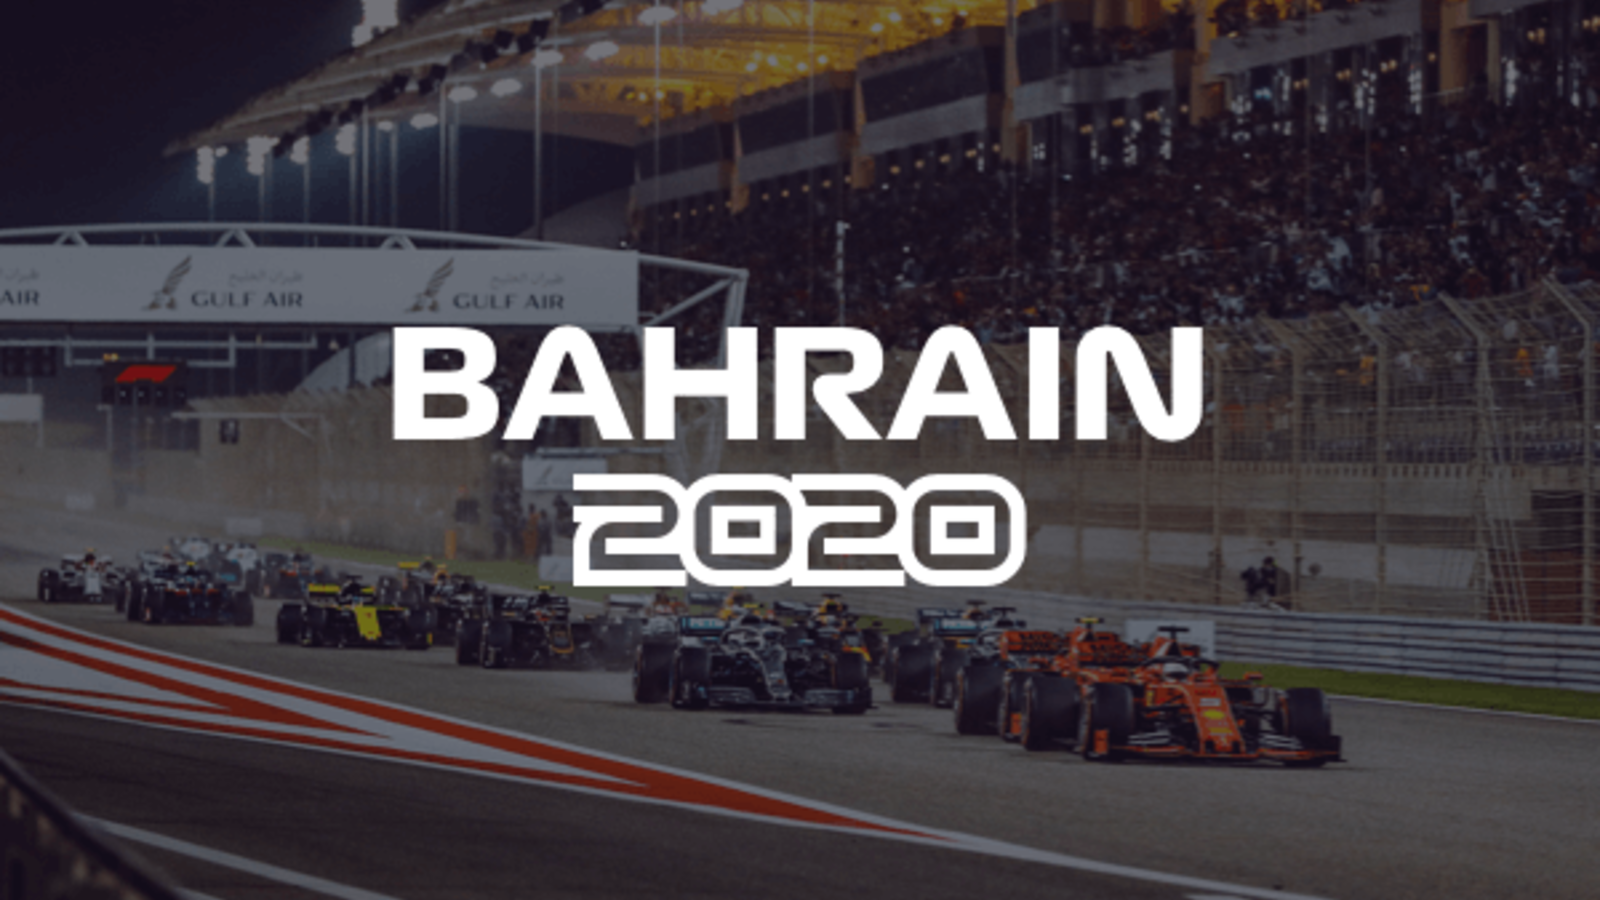 Bahrain Grand Prix 2020 Has Been Cancelled - F1 Coronavirus News